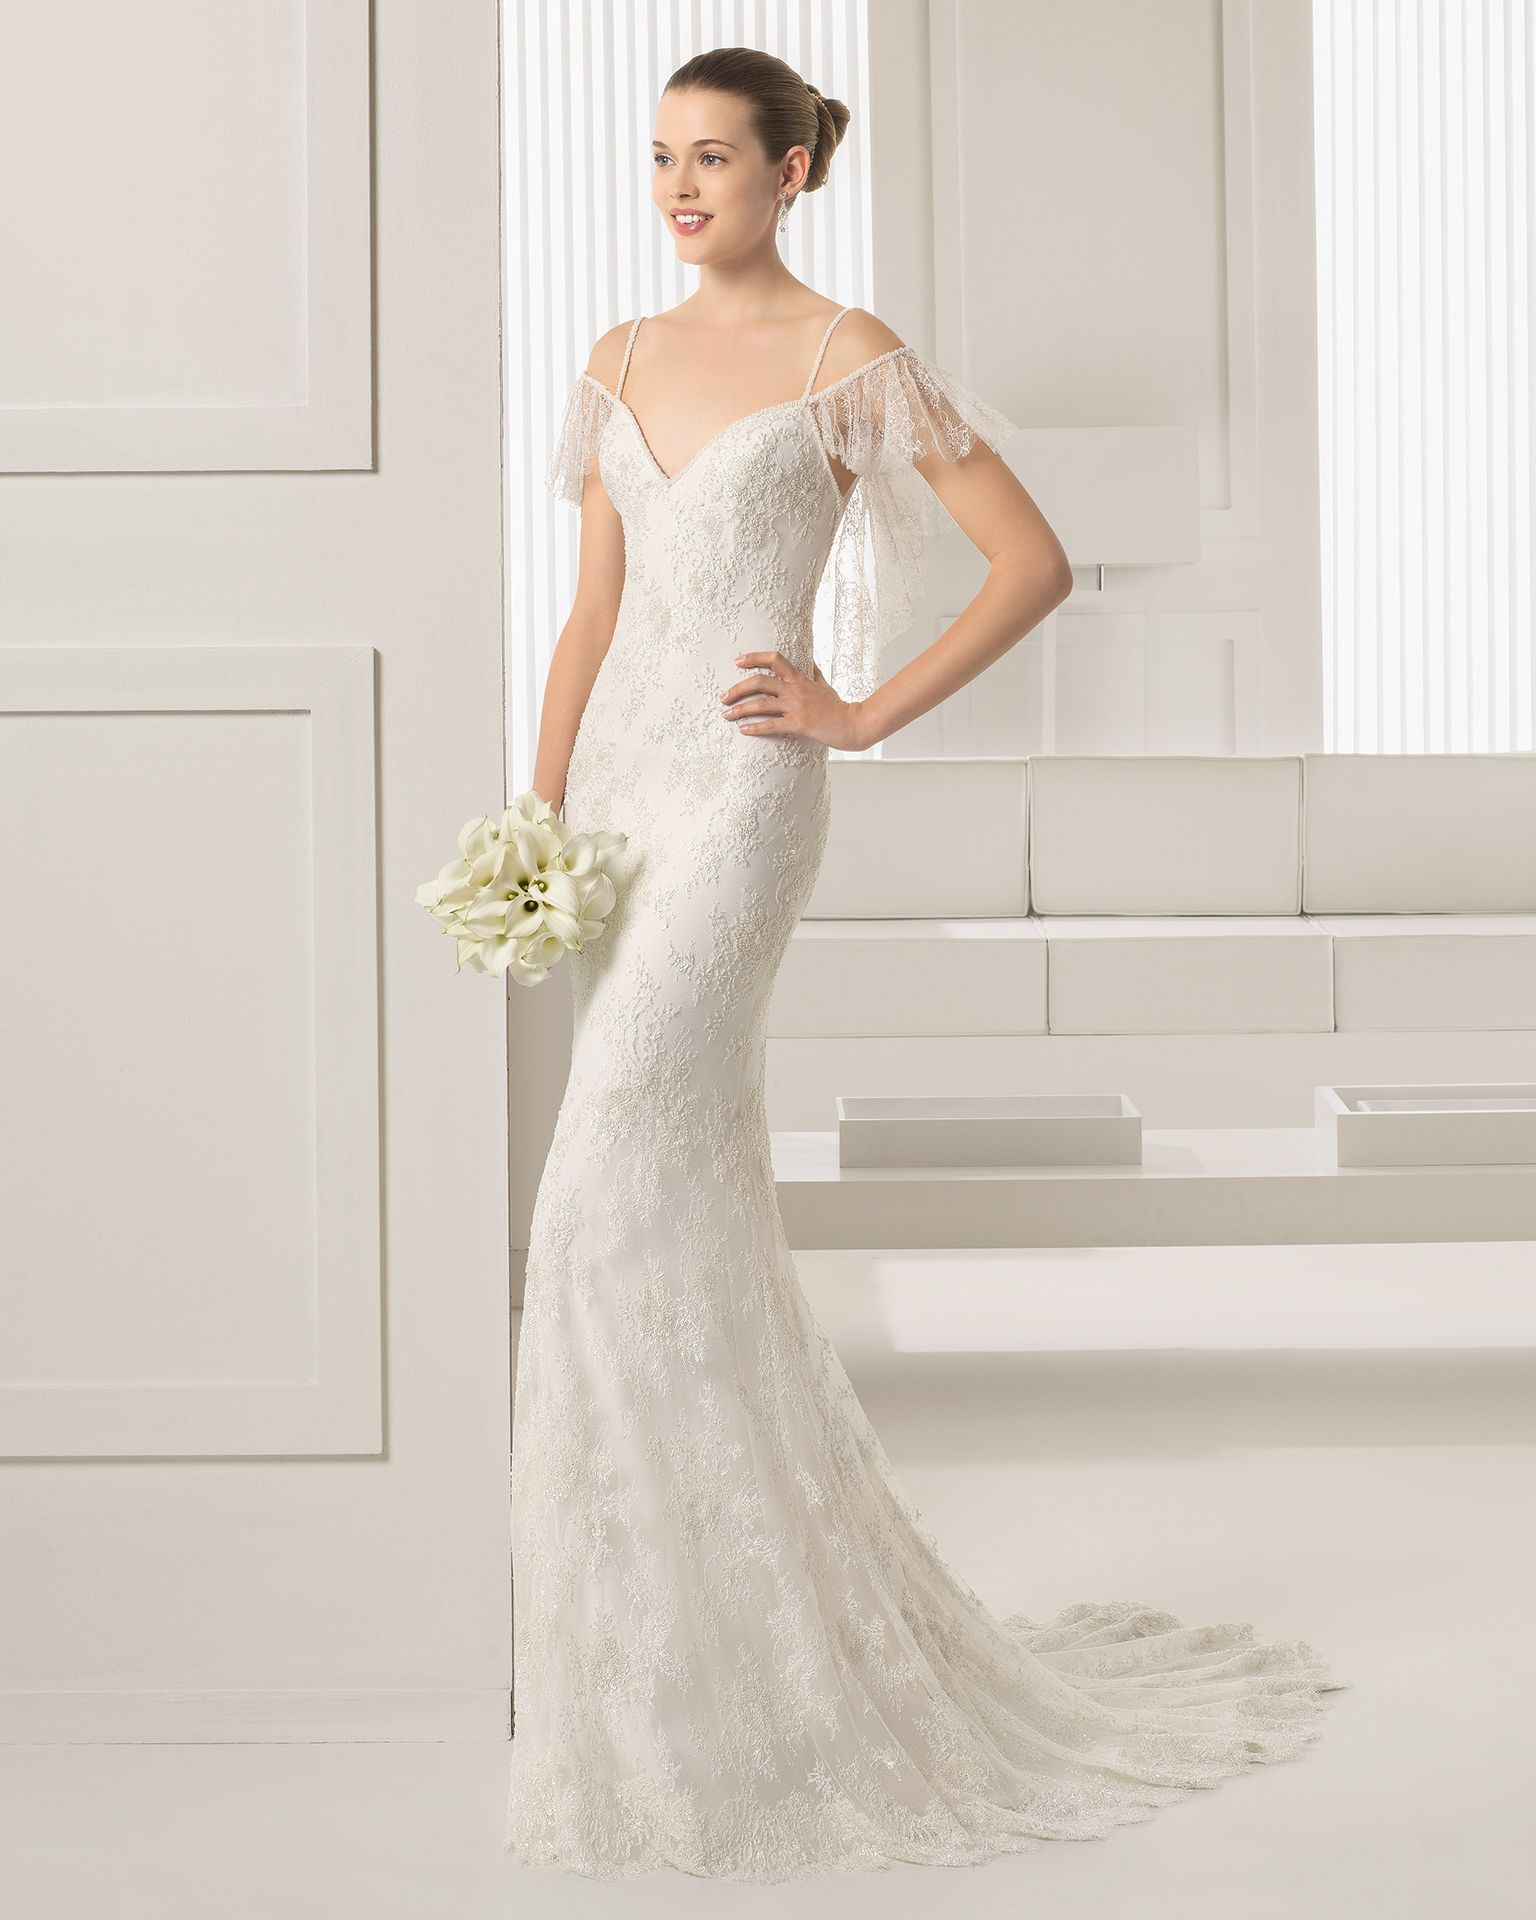 Rosa clara wedding dresses wedding dresses pinterest